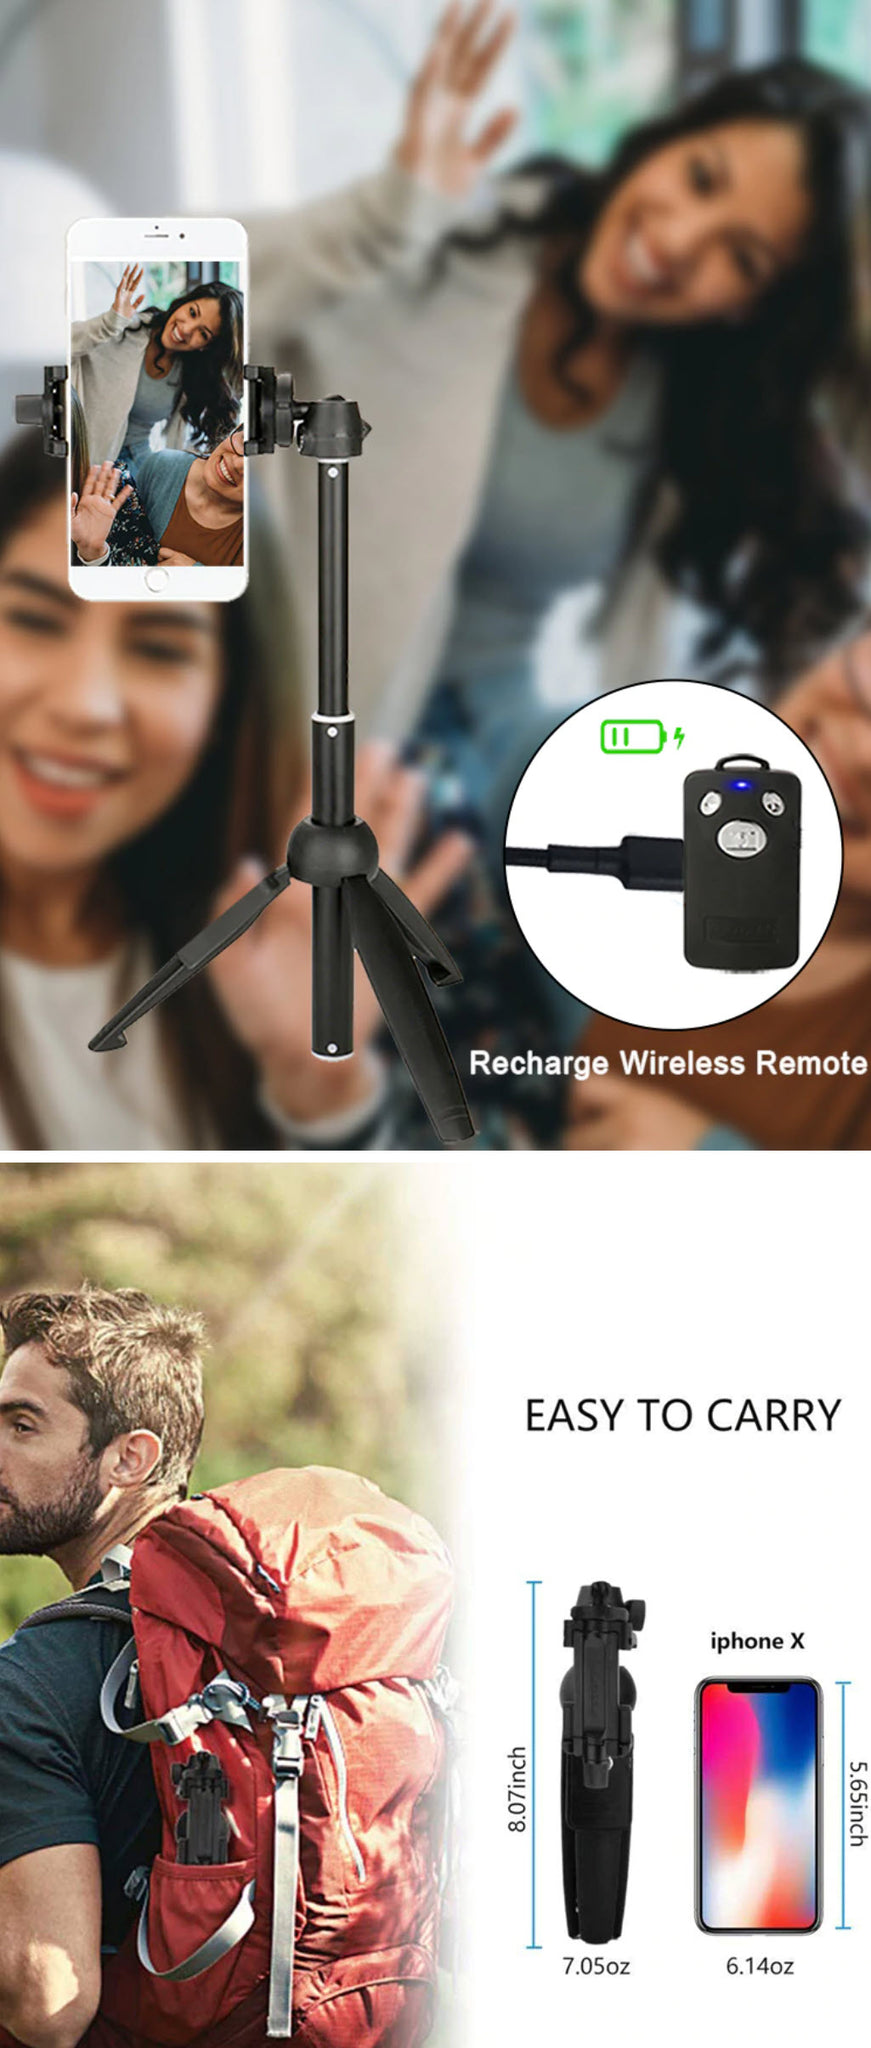 Wireless Bluetooth Super Selfie Stick Recharge Wireless Remote Easy to Carry